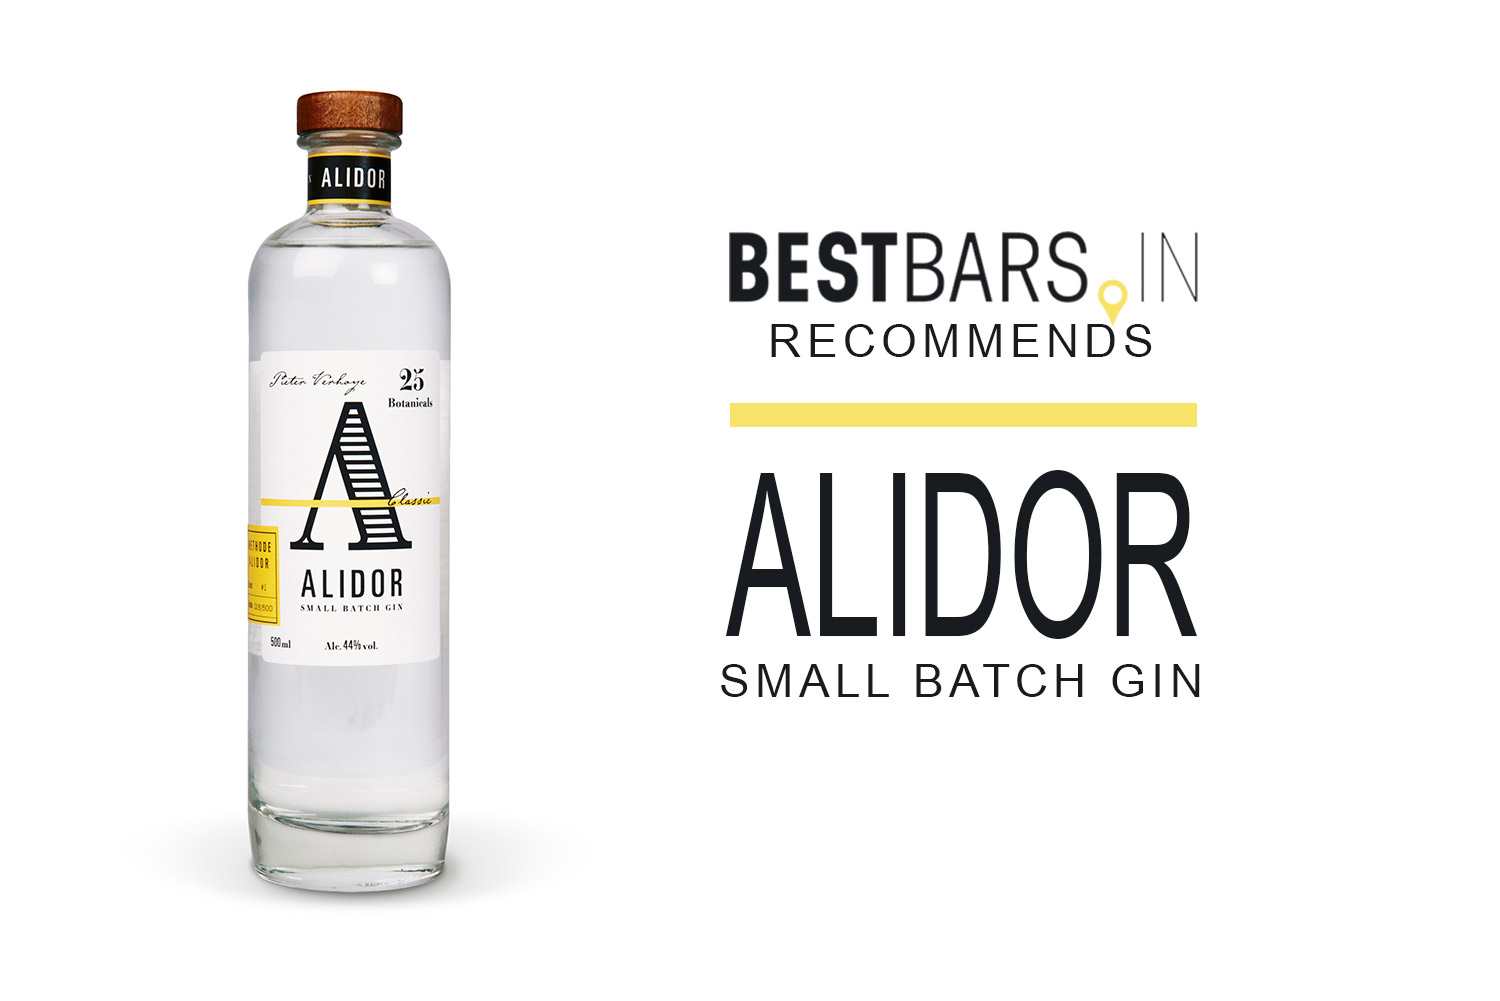 Alidor, Small Batch Gin